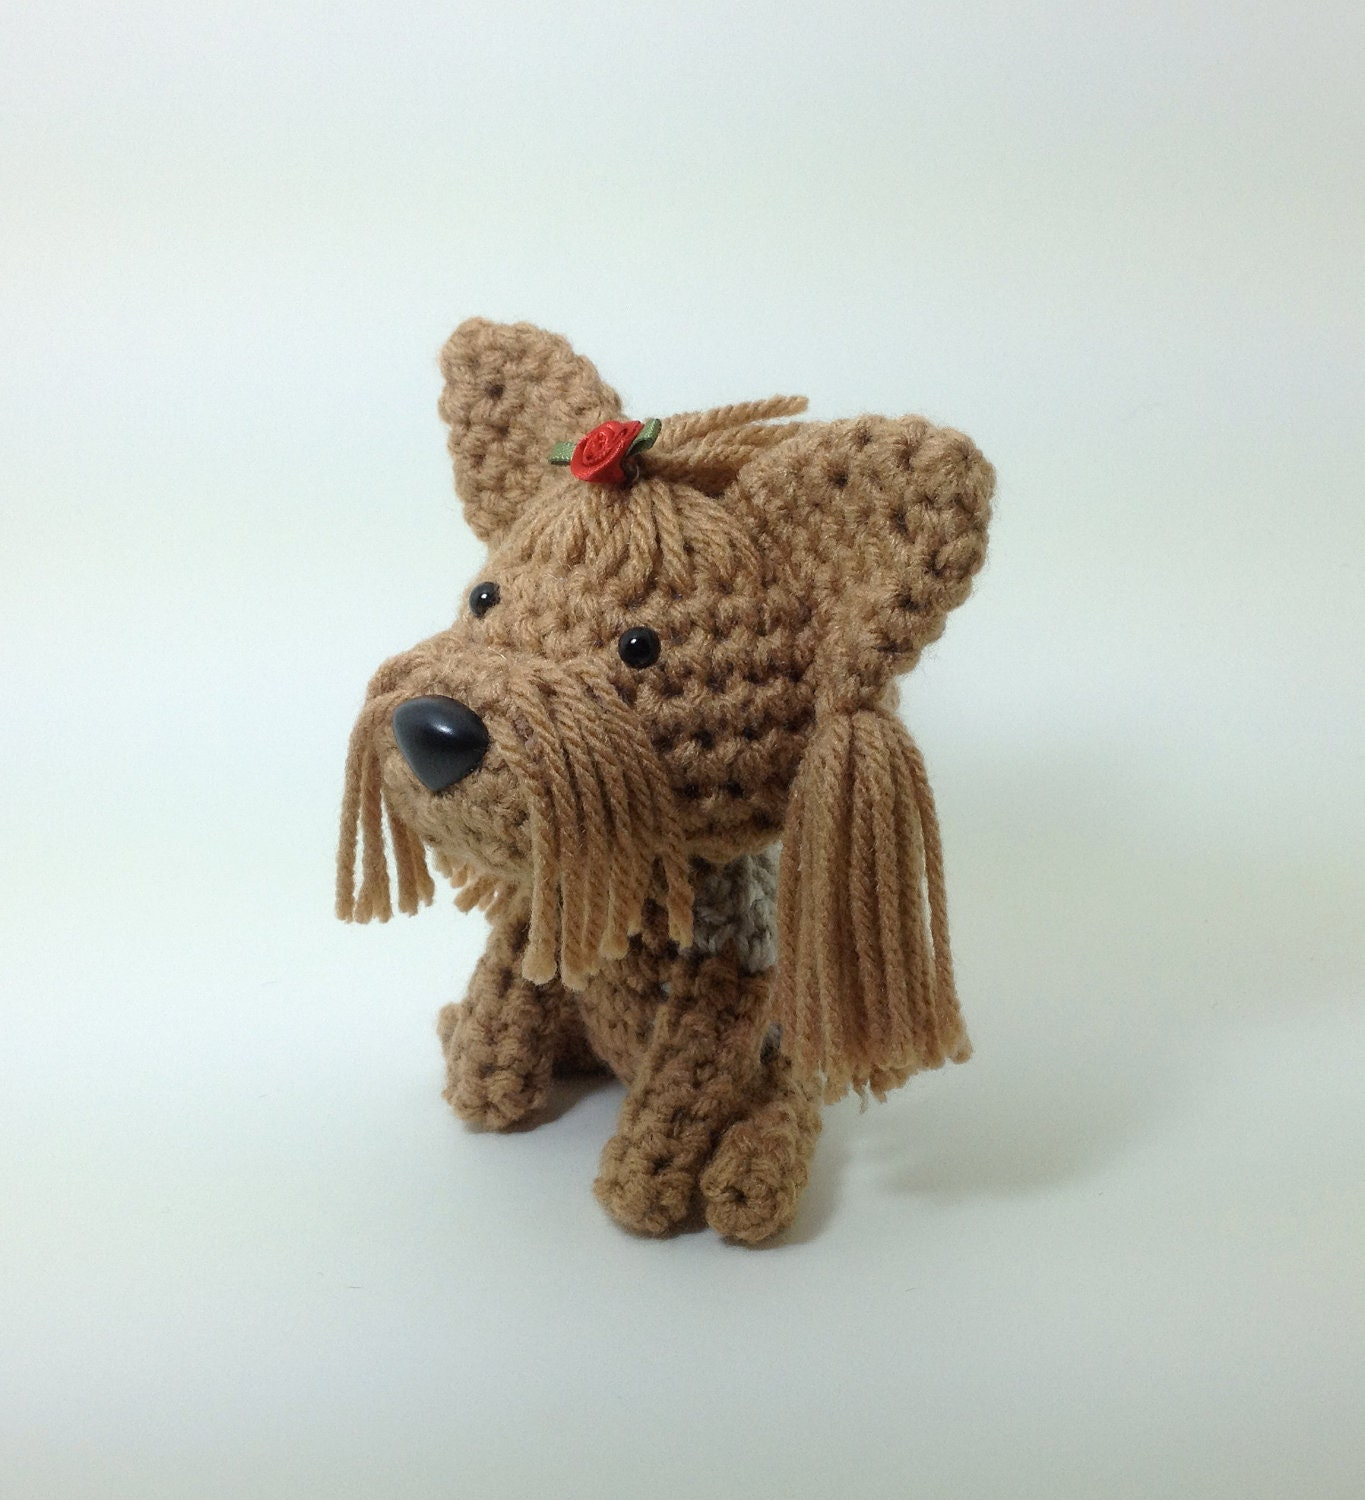 Amigurumi Animals Patterns Free : Yorkie Stuffed Animal Yorkshire Terrier Amigurumi Dog Crochet